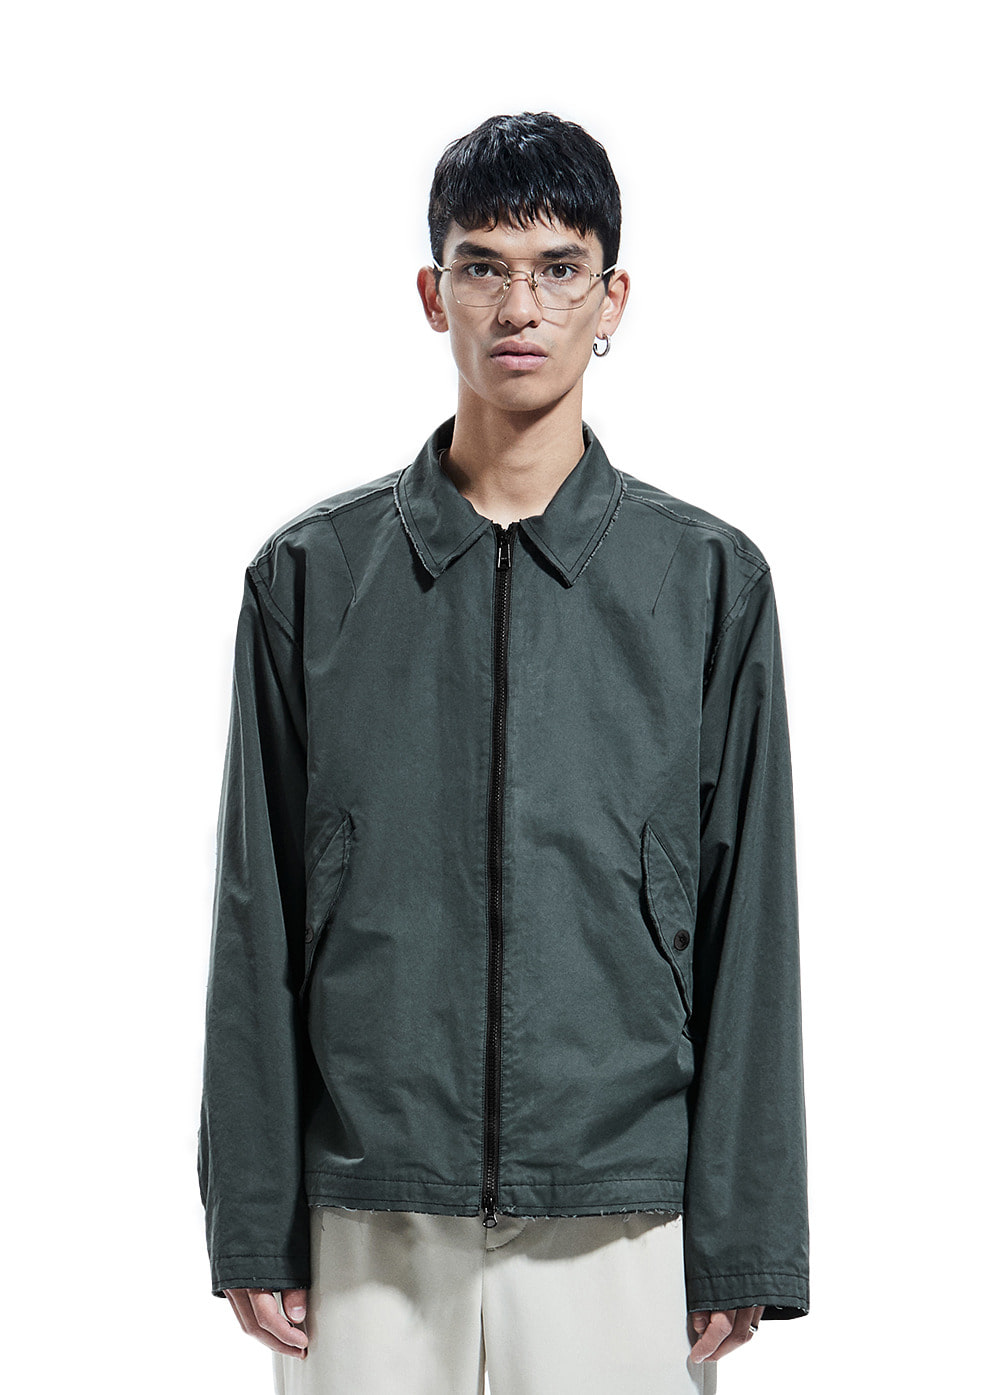 CUT-OFF COLLAR BLOUSON charcoal